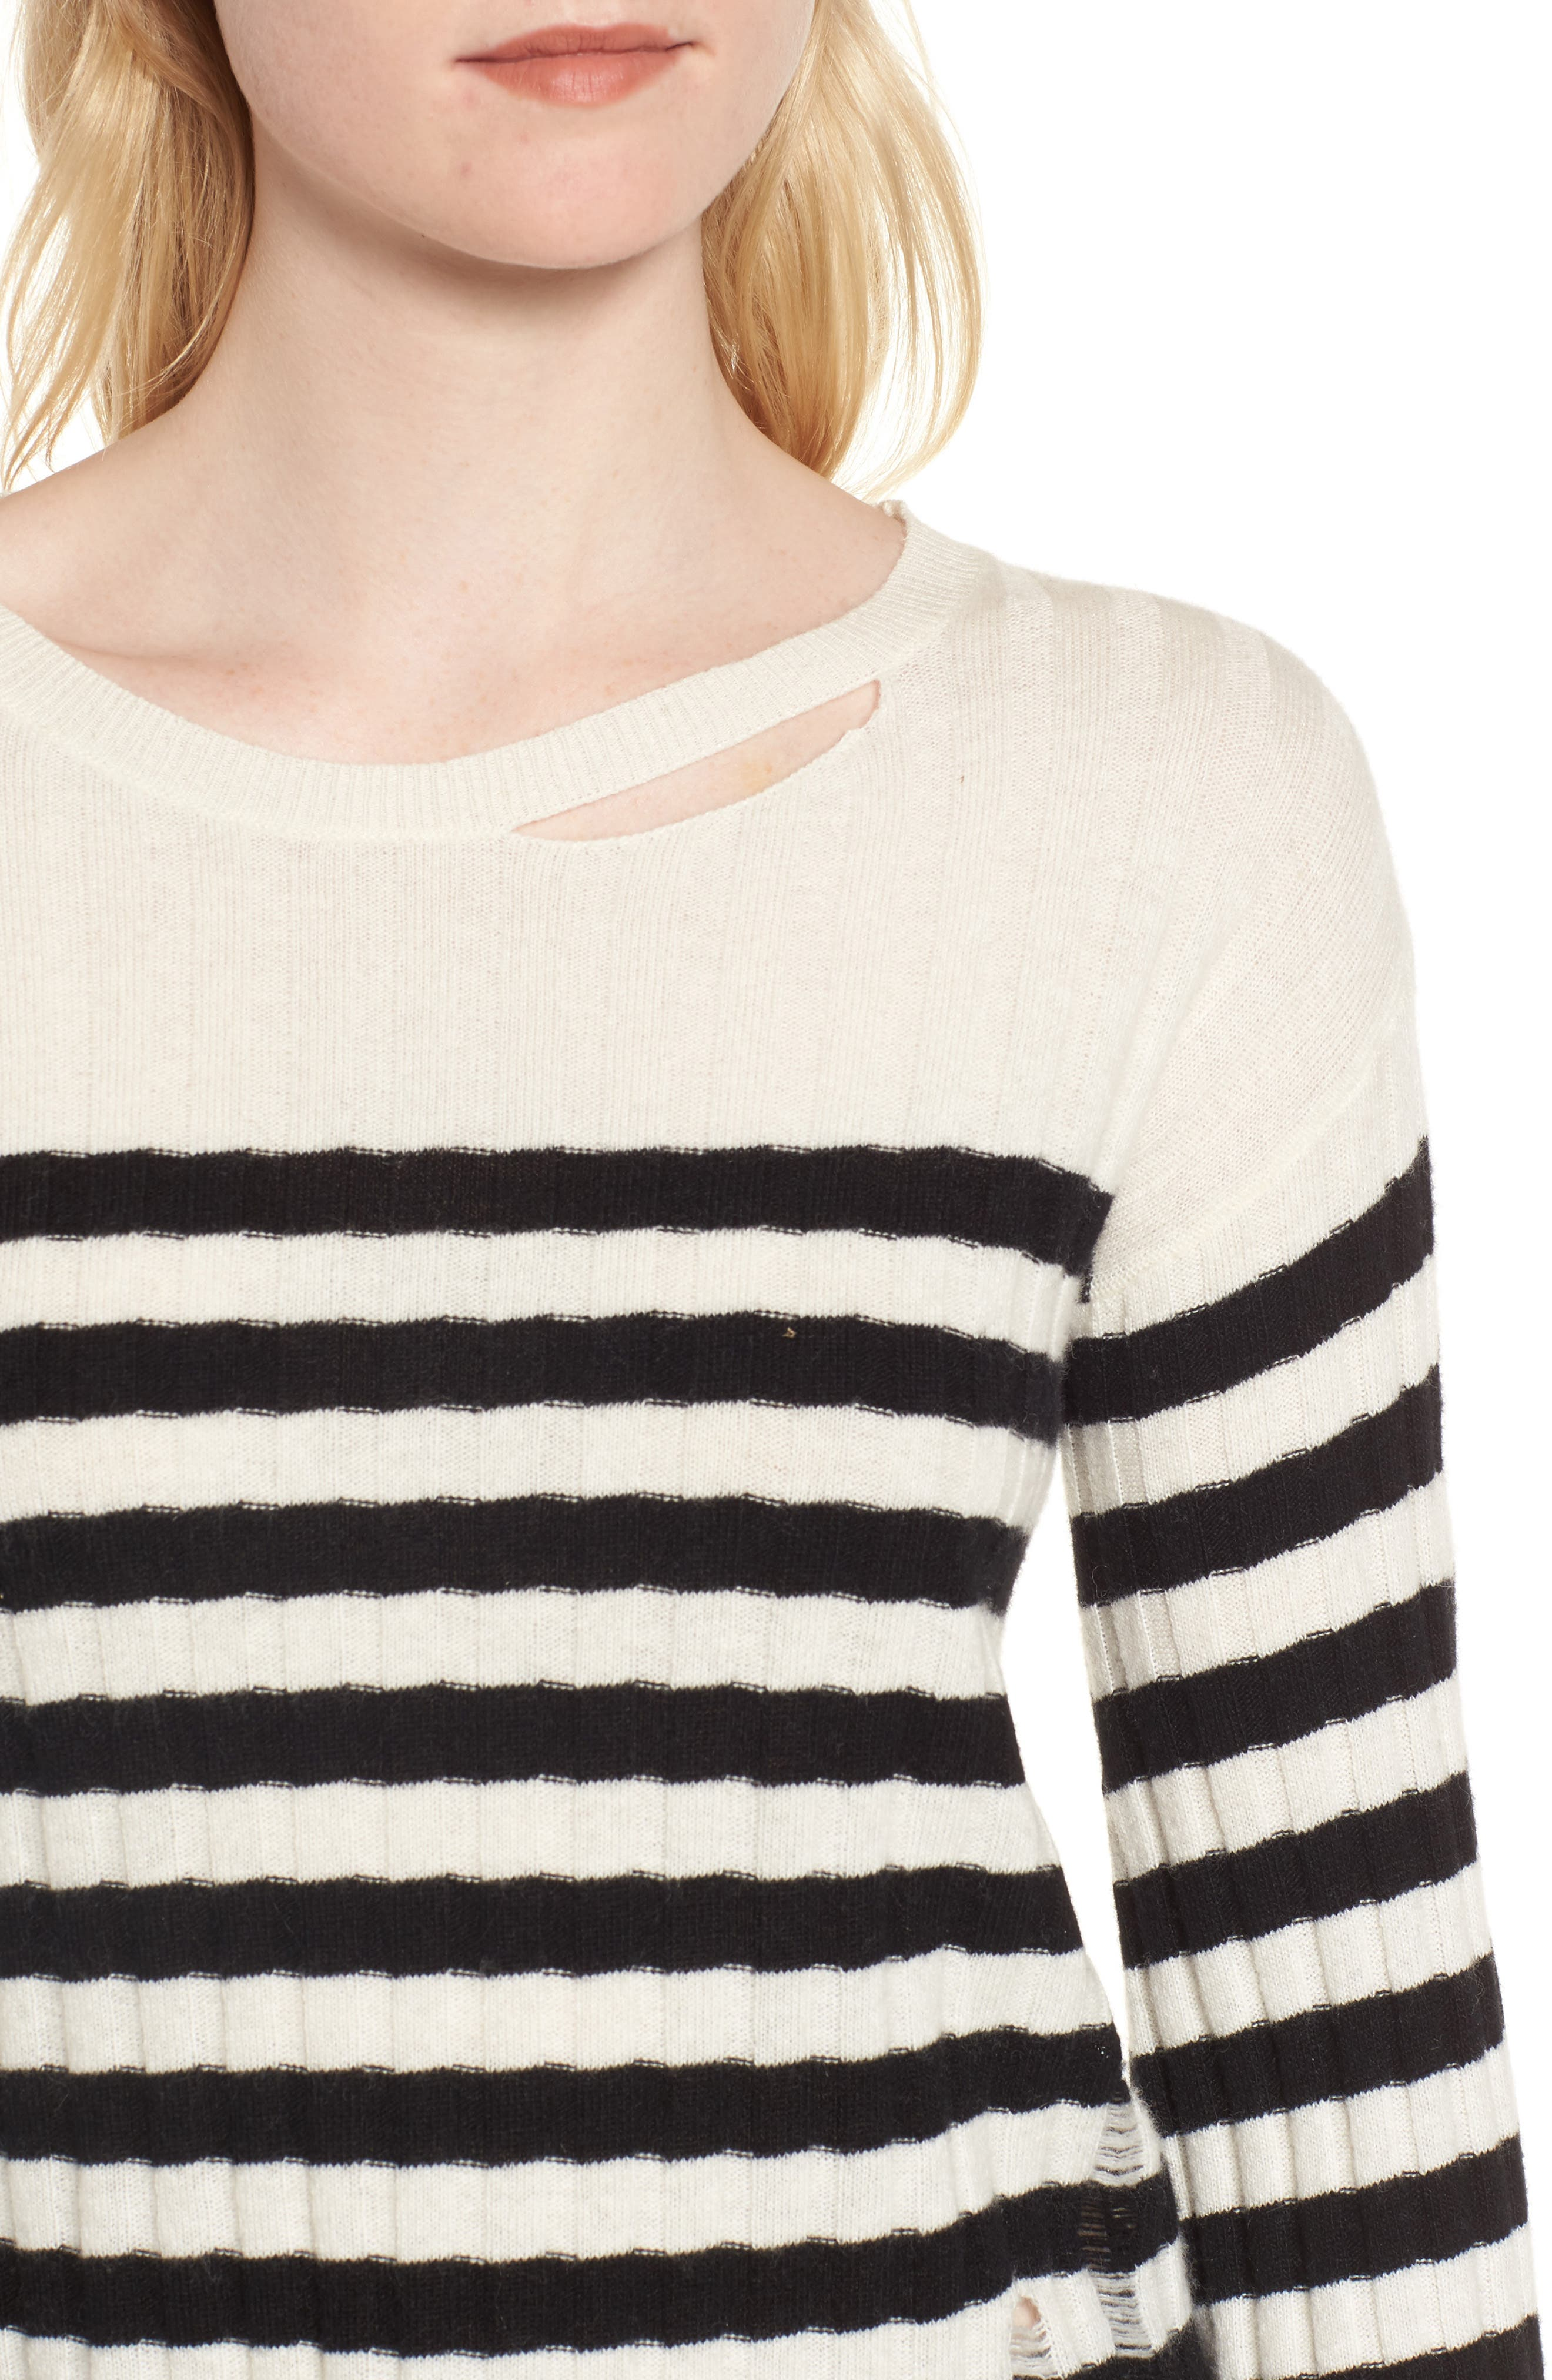 Destroyed Stripe Sweater,                             Alternate thumbnail 4, color,                             004